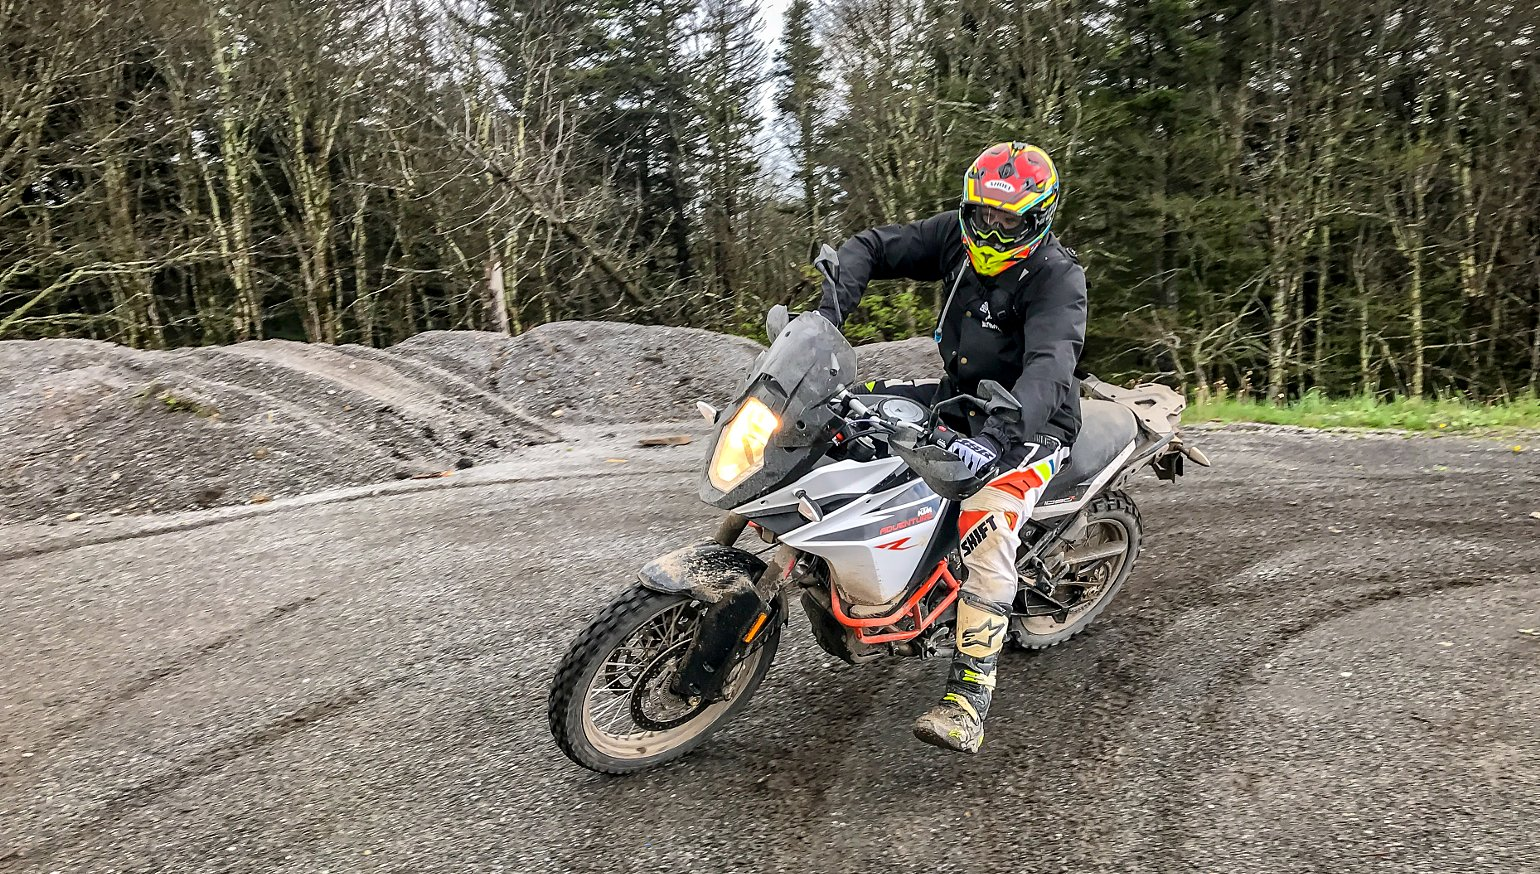 Trading places: Introducing a motocross racer to adventure riding